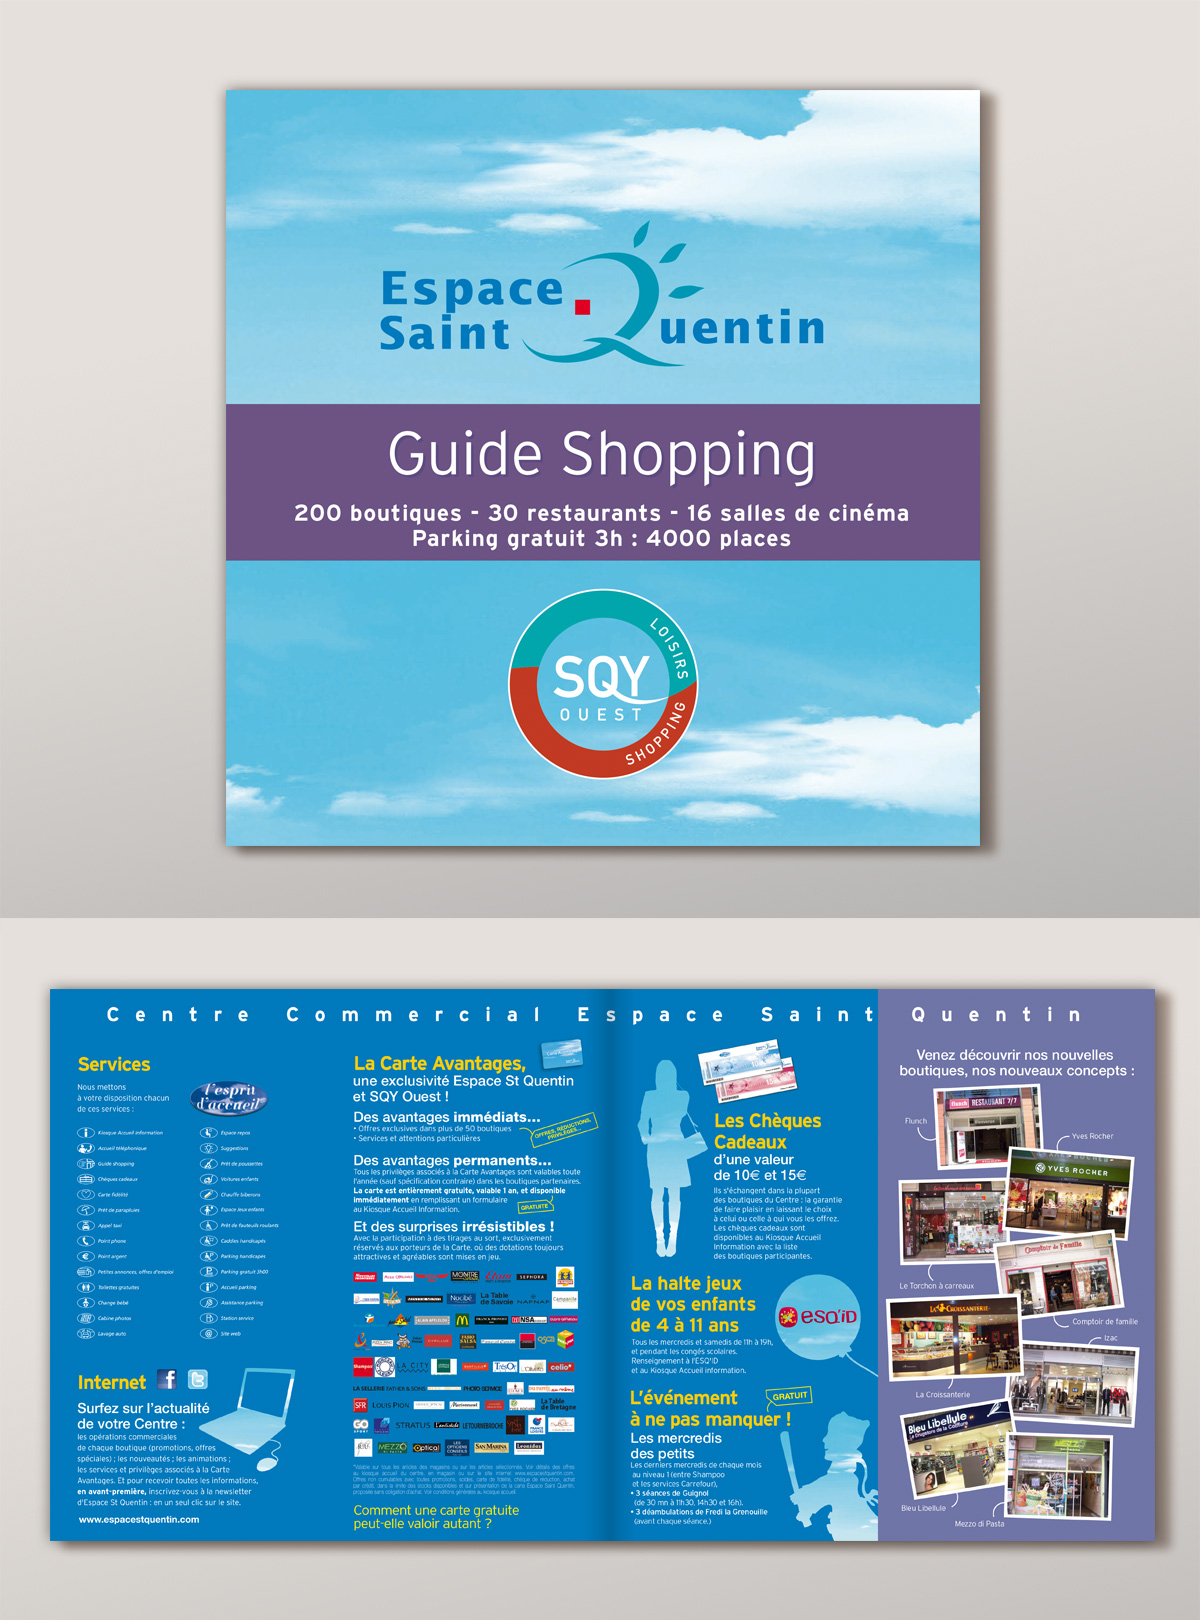 edition-saint-quentin-guide-shopping